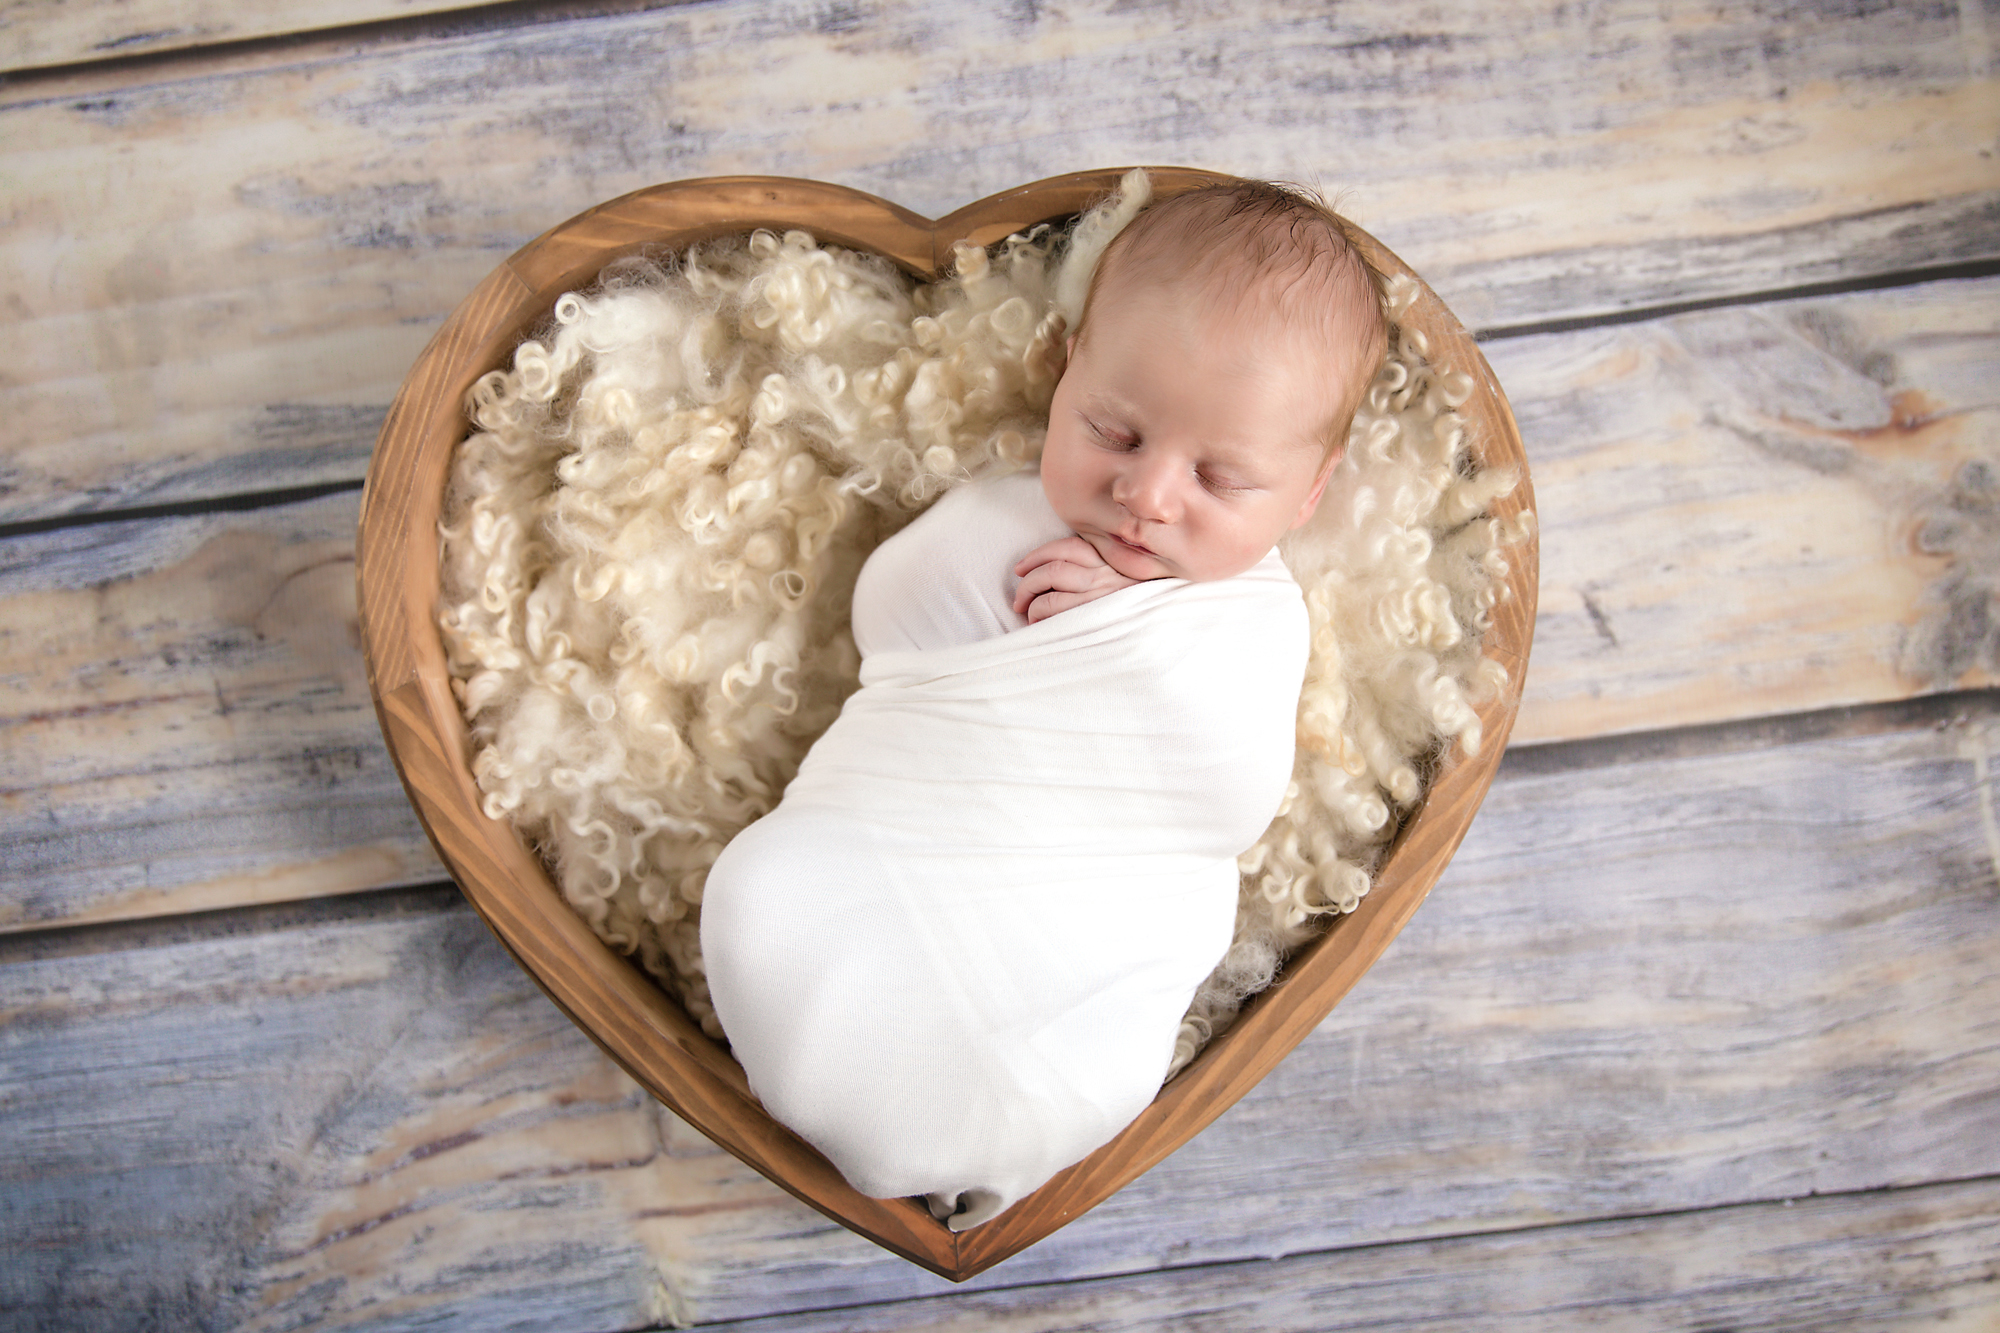 Baby boy posed in a heart bowl. Calgary Newborn and Baby photographer - Milashka Photography.